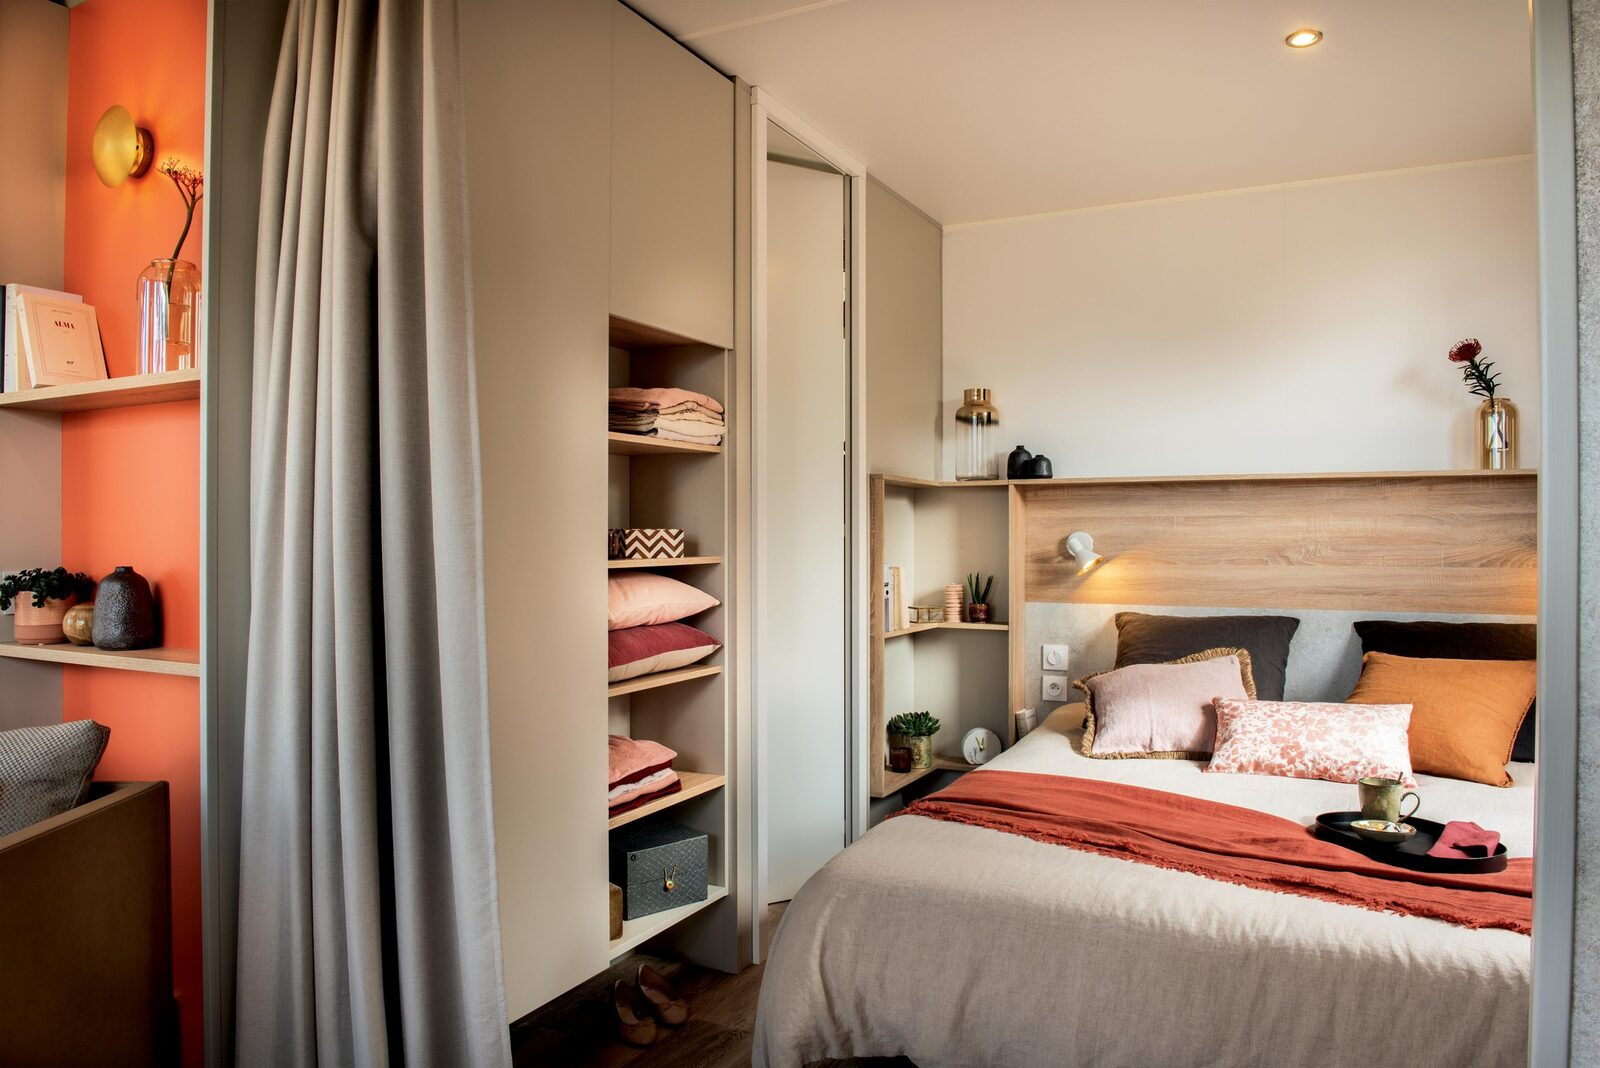 2-persoons Hotellodge